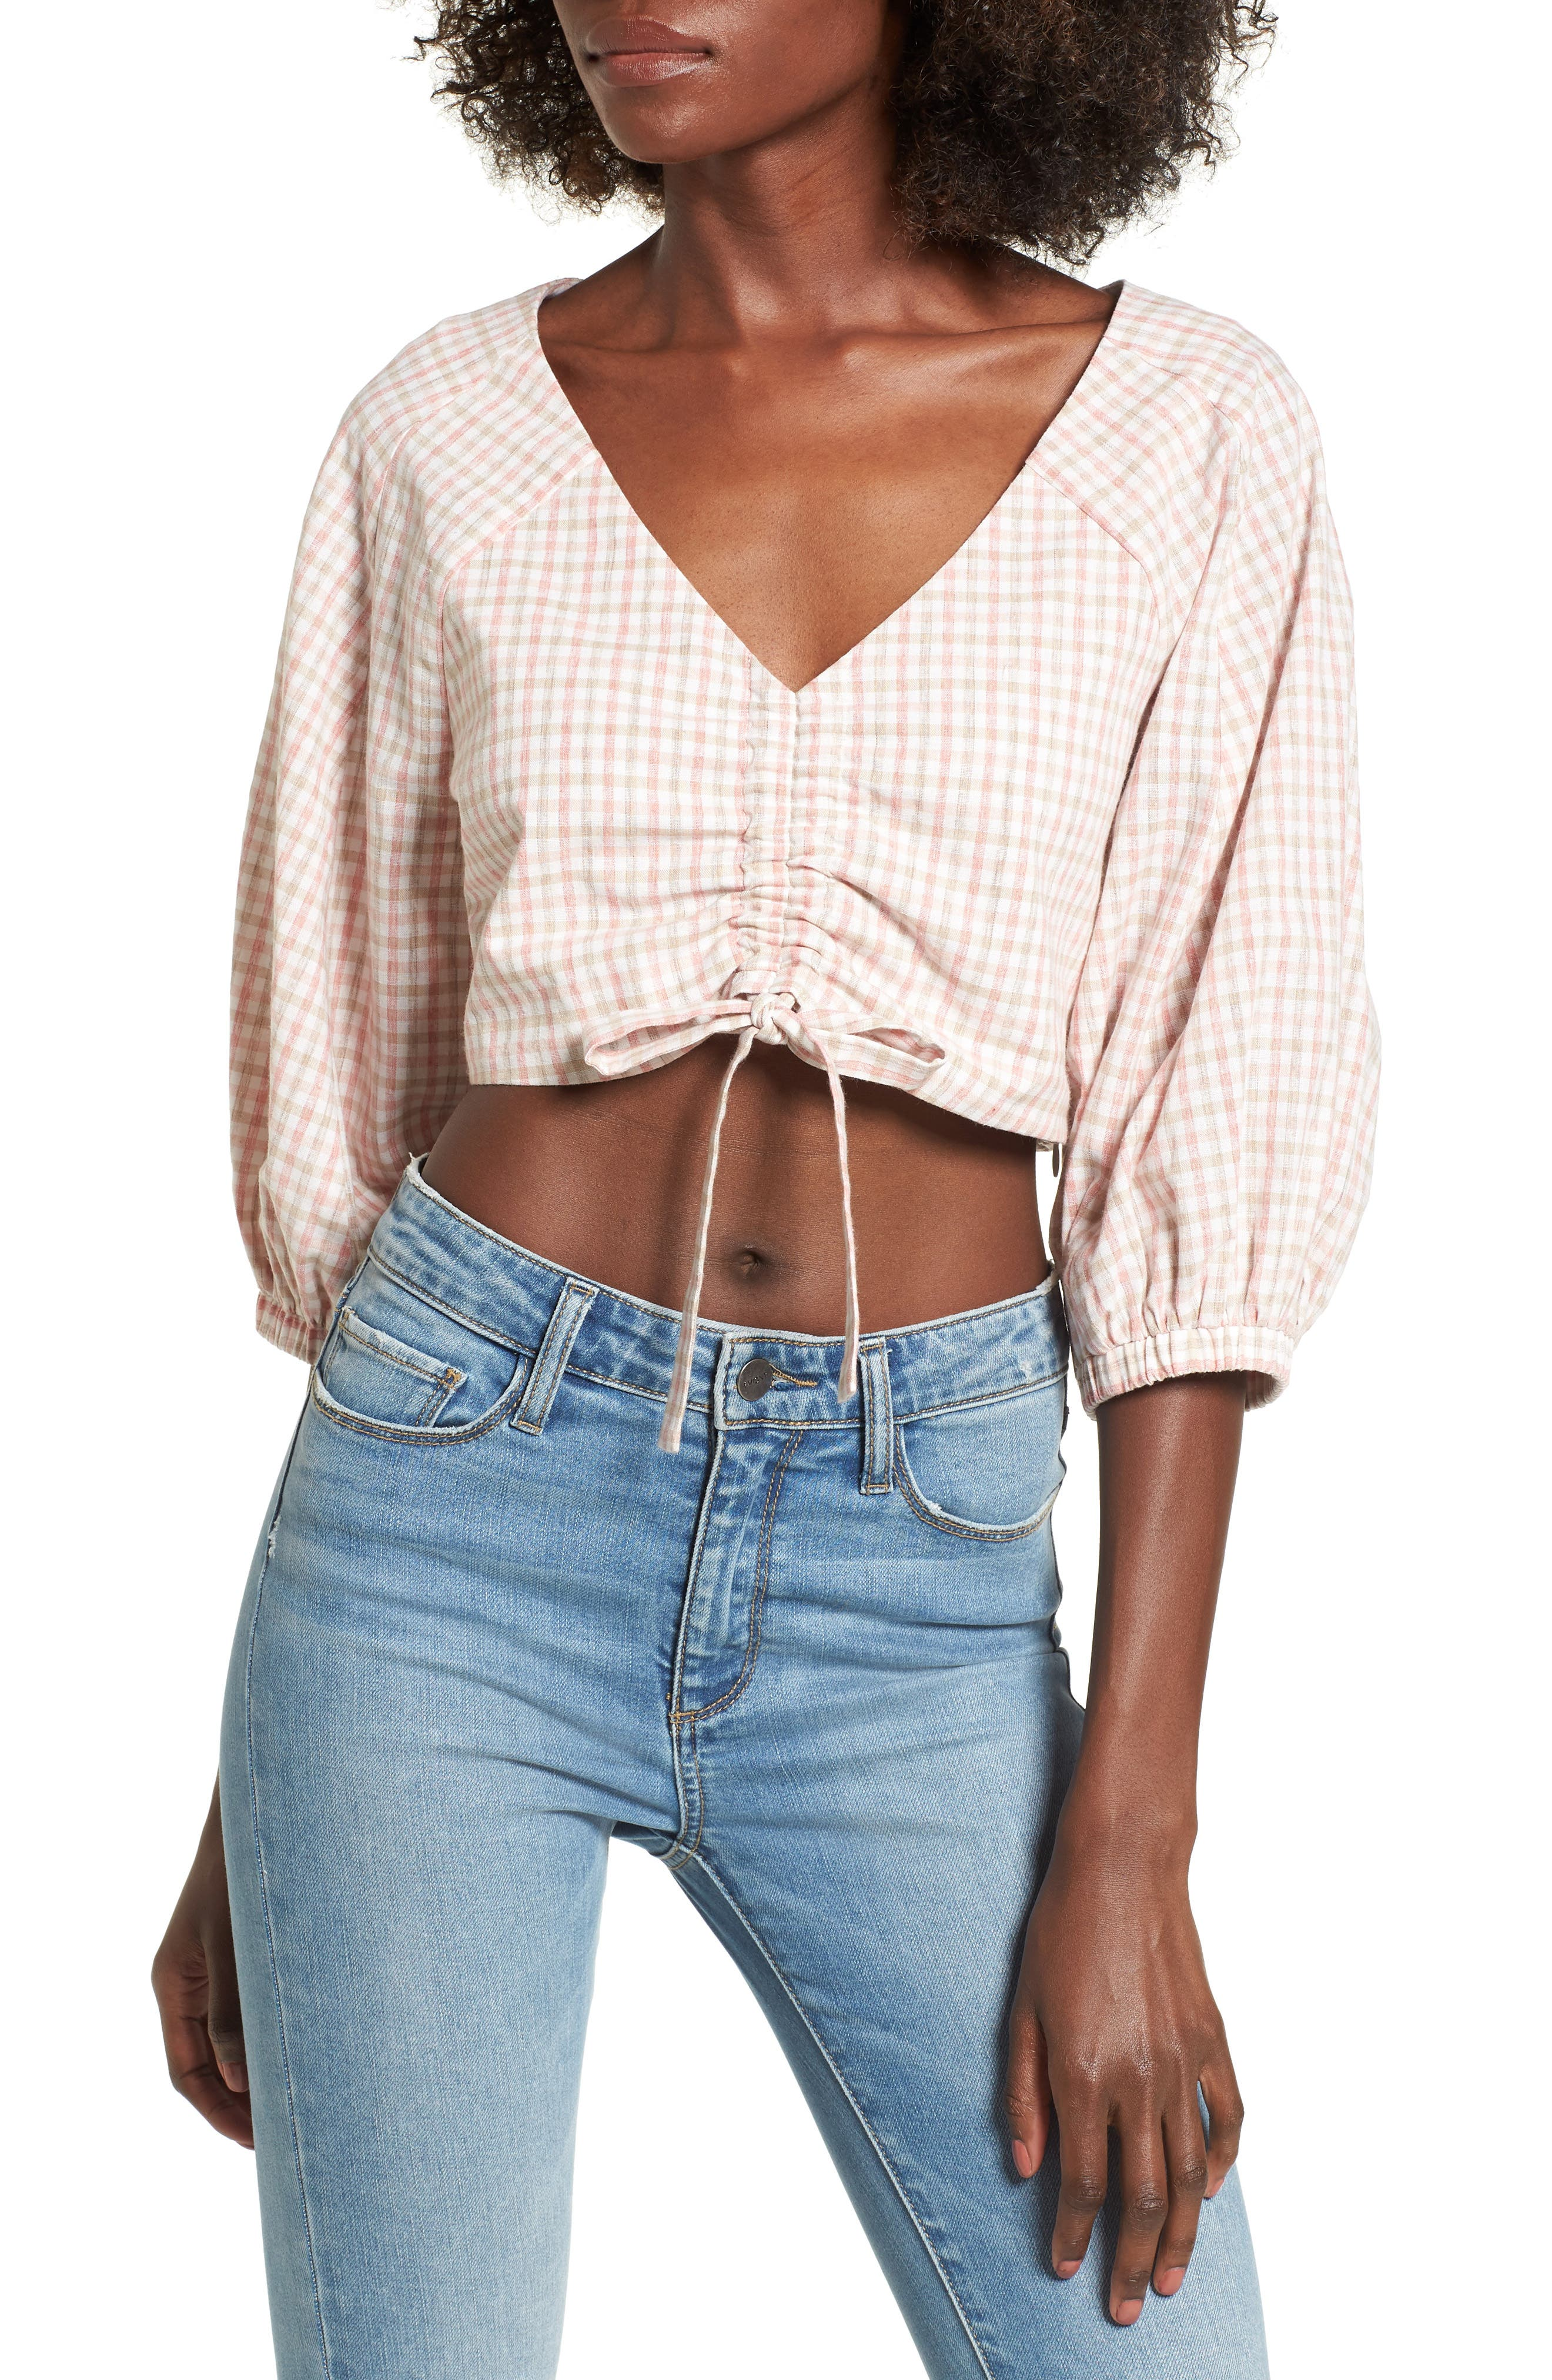 Chriselle x J.O.A. Ruched Front Crop Top